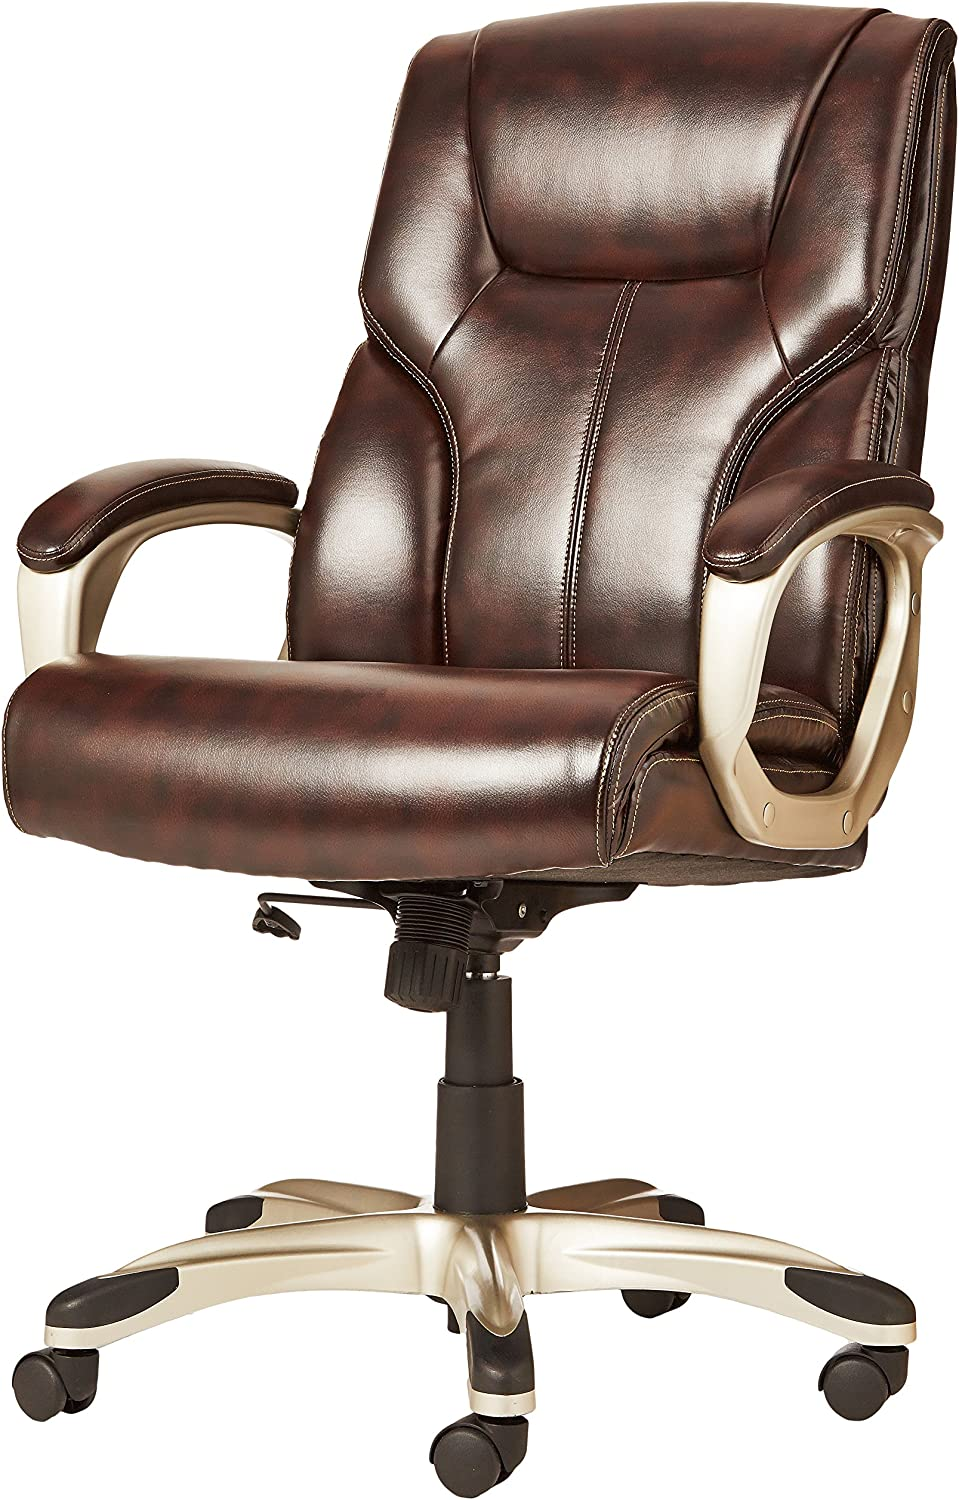 BIFMA Certified Basics High-Back Executive Swivel Office Desk Chair Brown with Pewter Finish